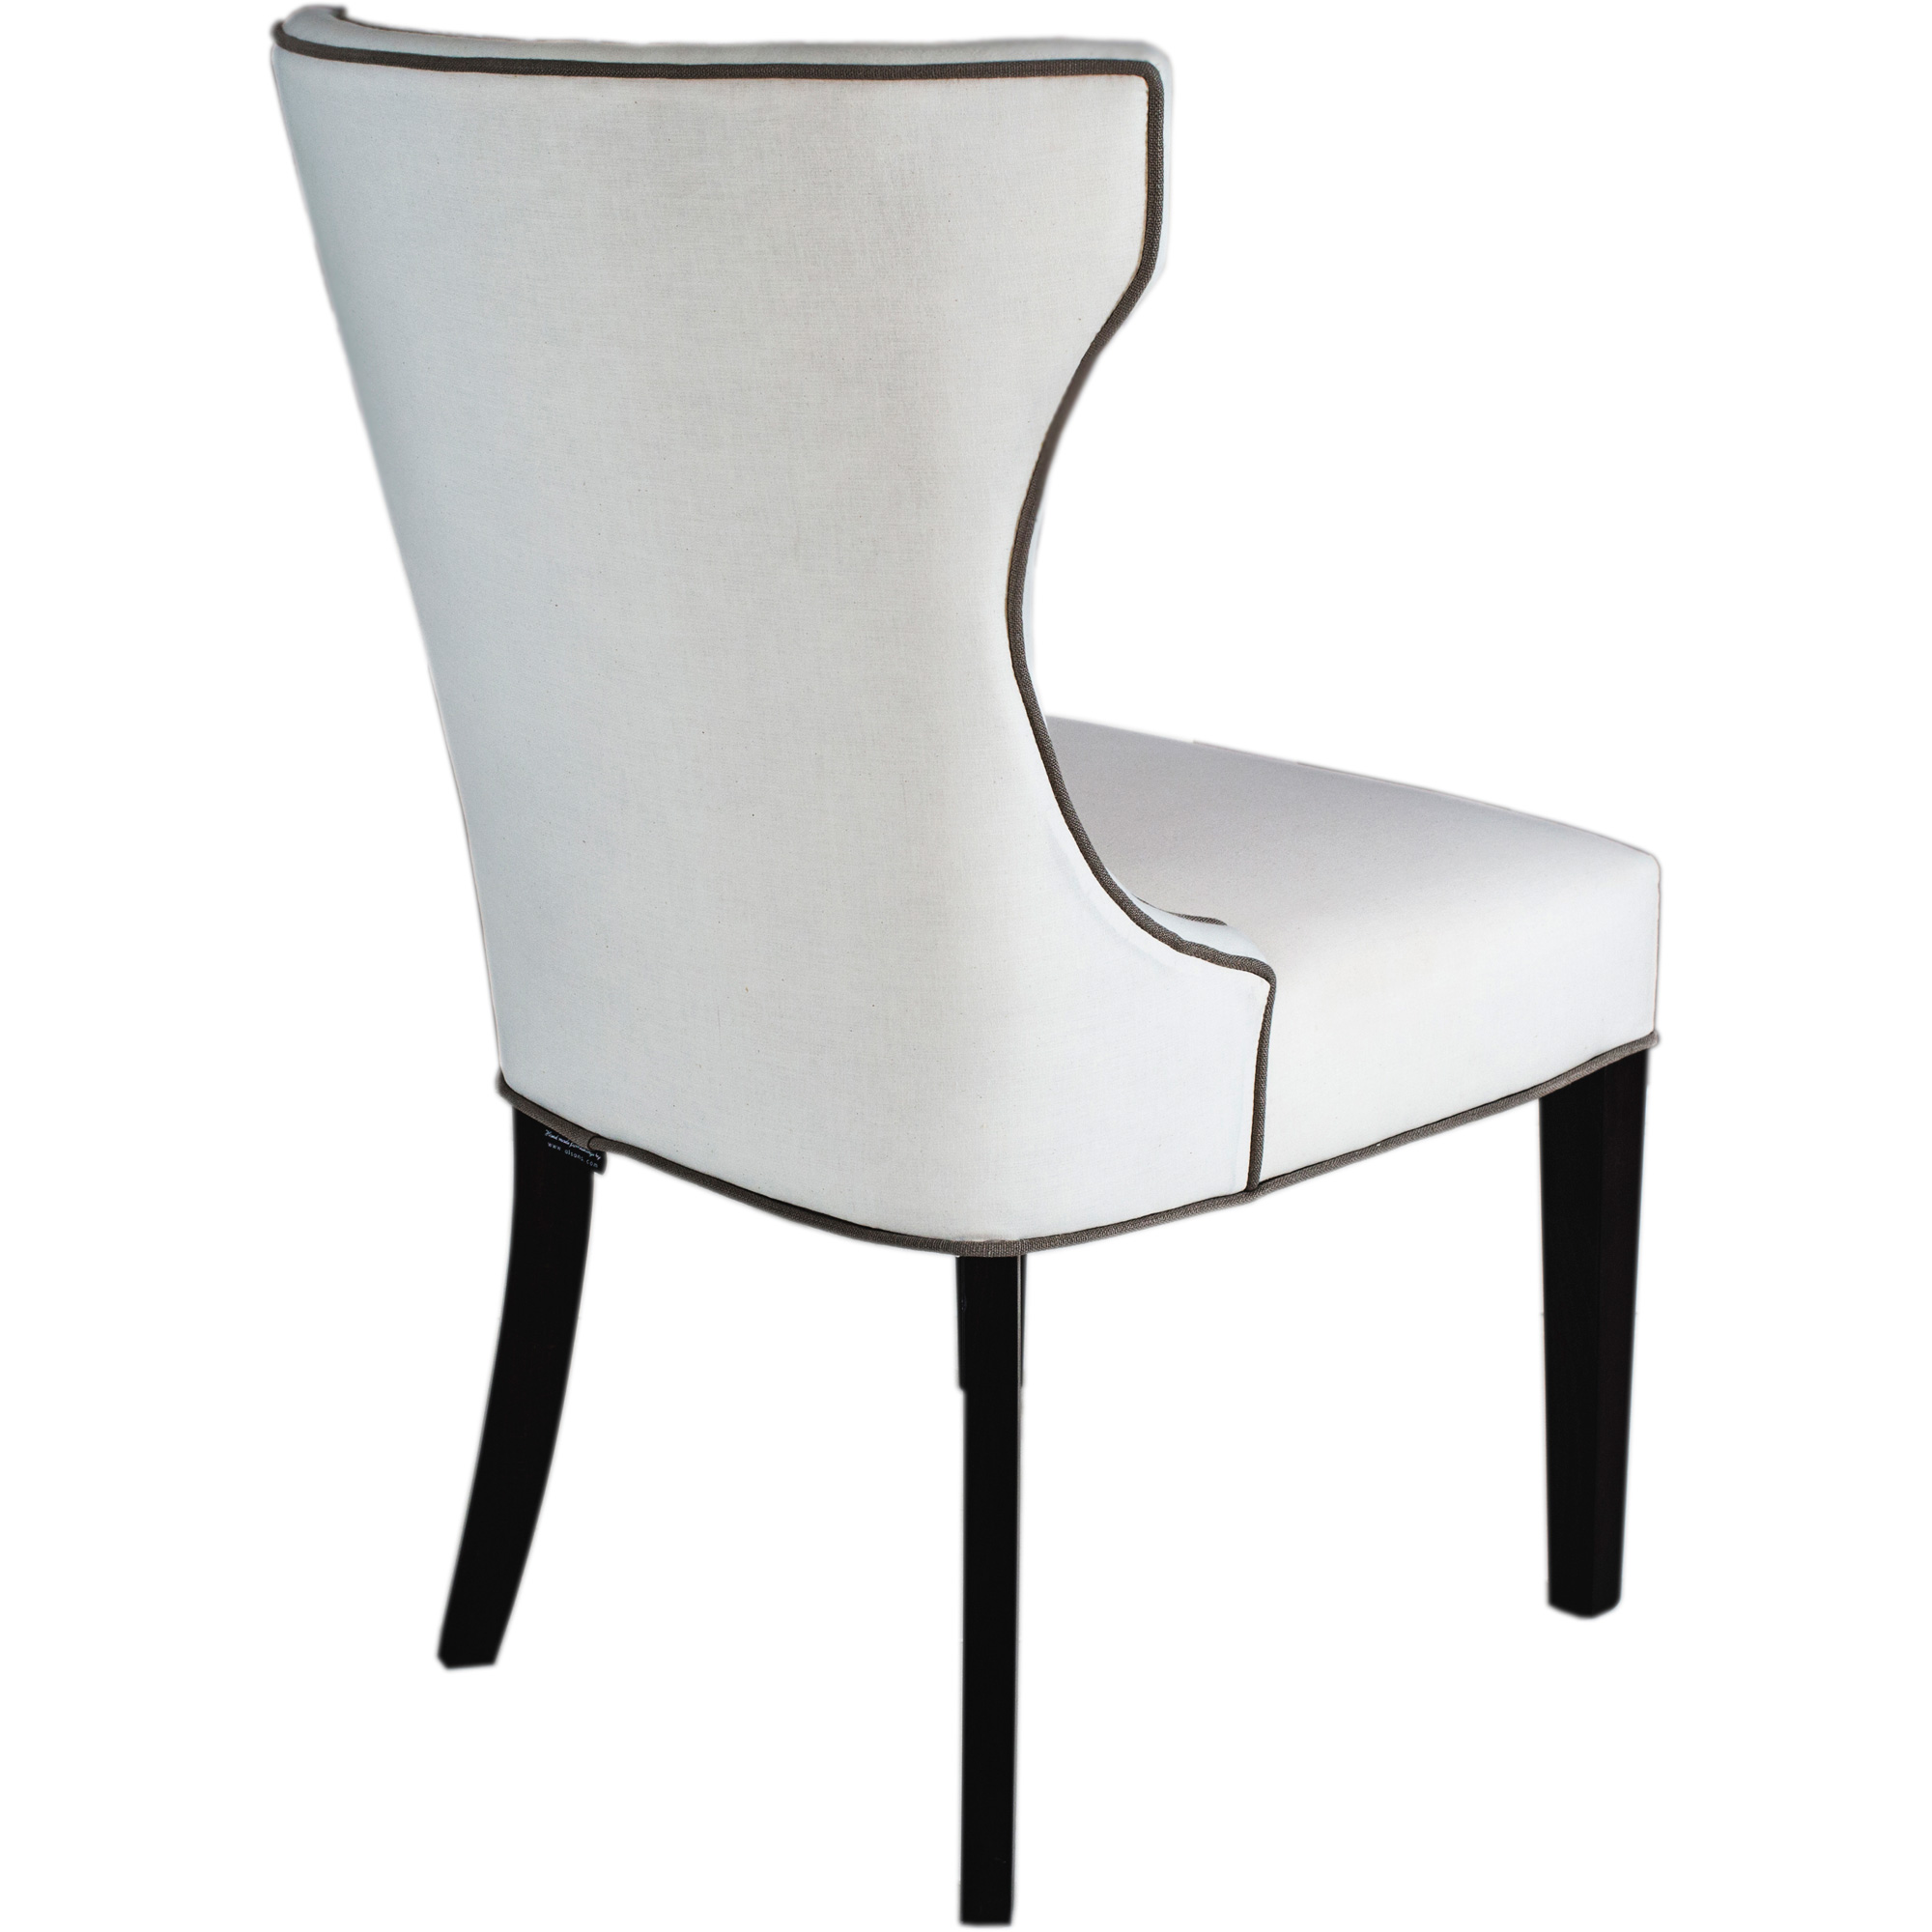 Bolton Dining Chair on white